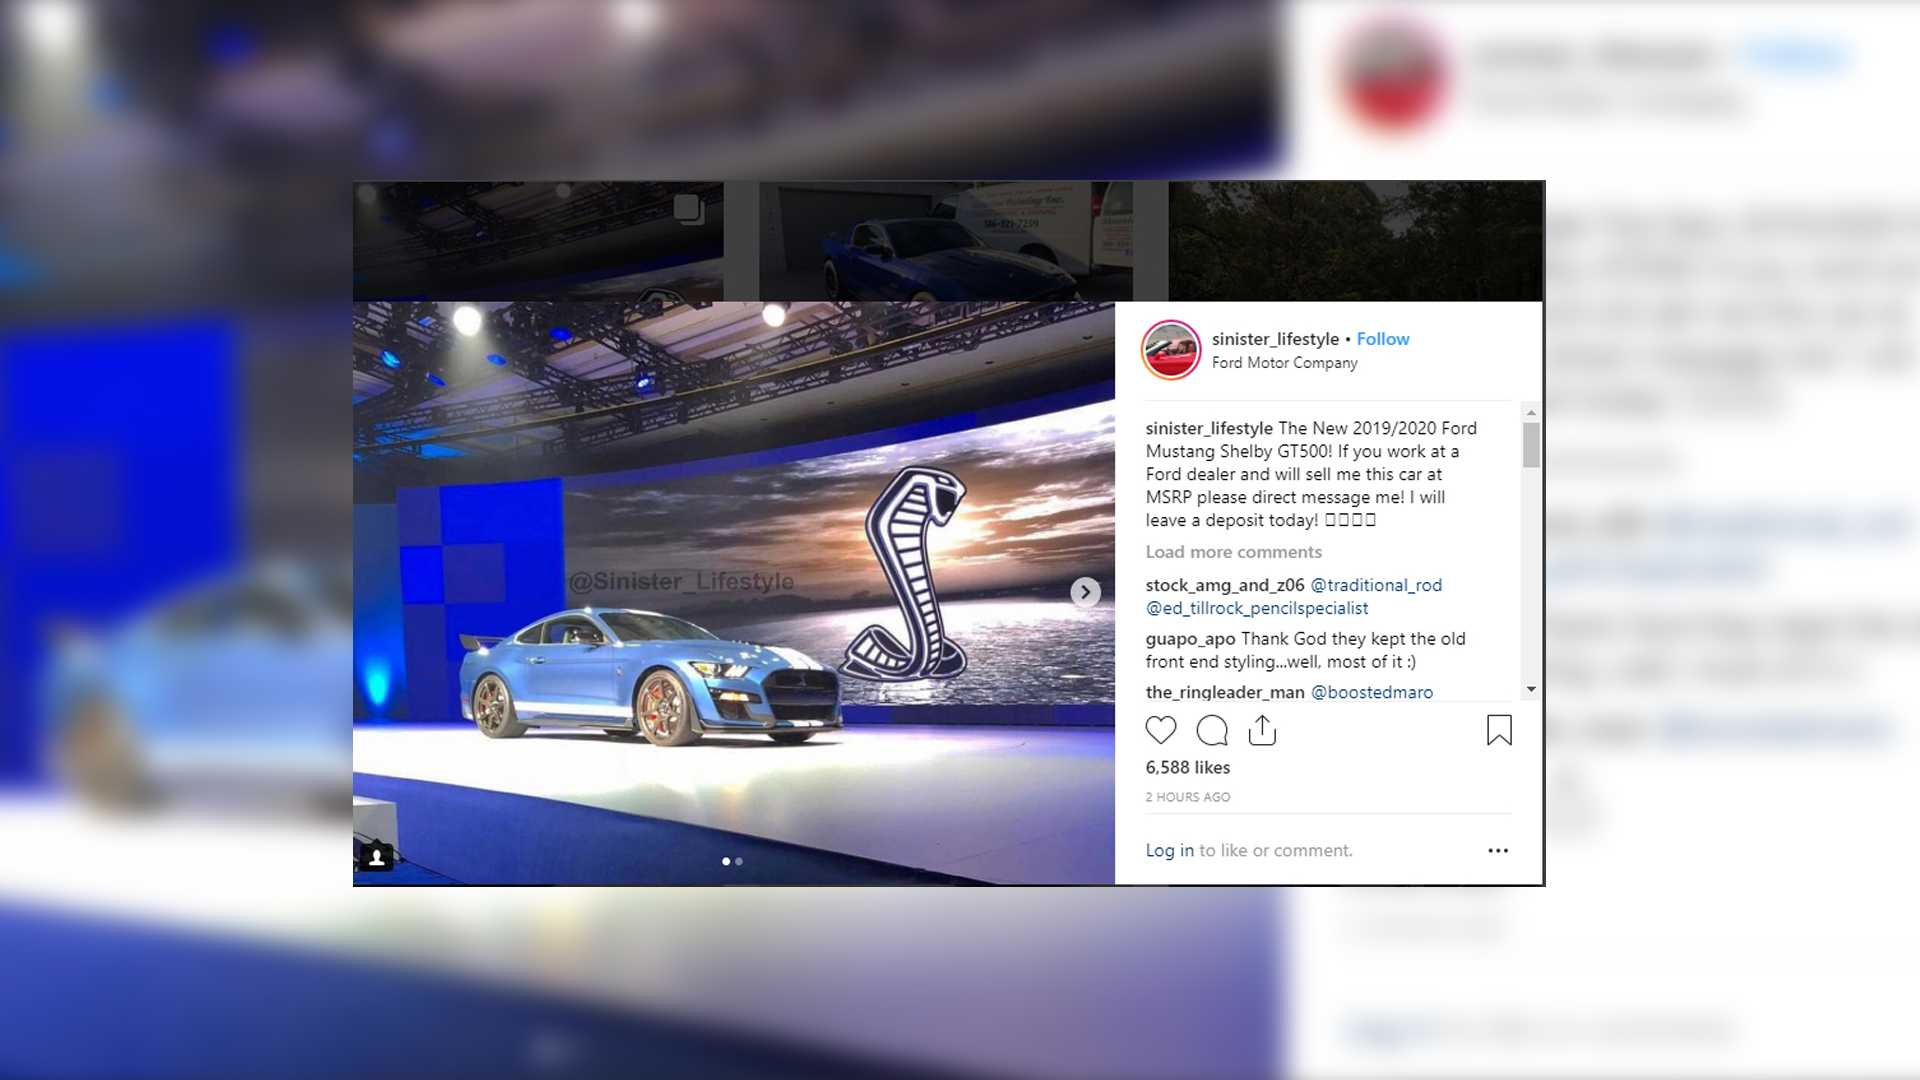 2019 ford mustang shelby gt500 allegedly leaked online